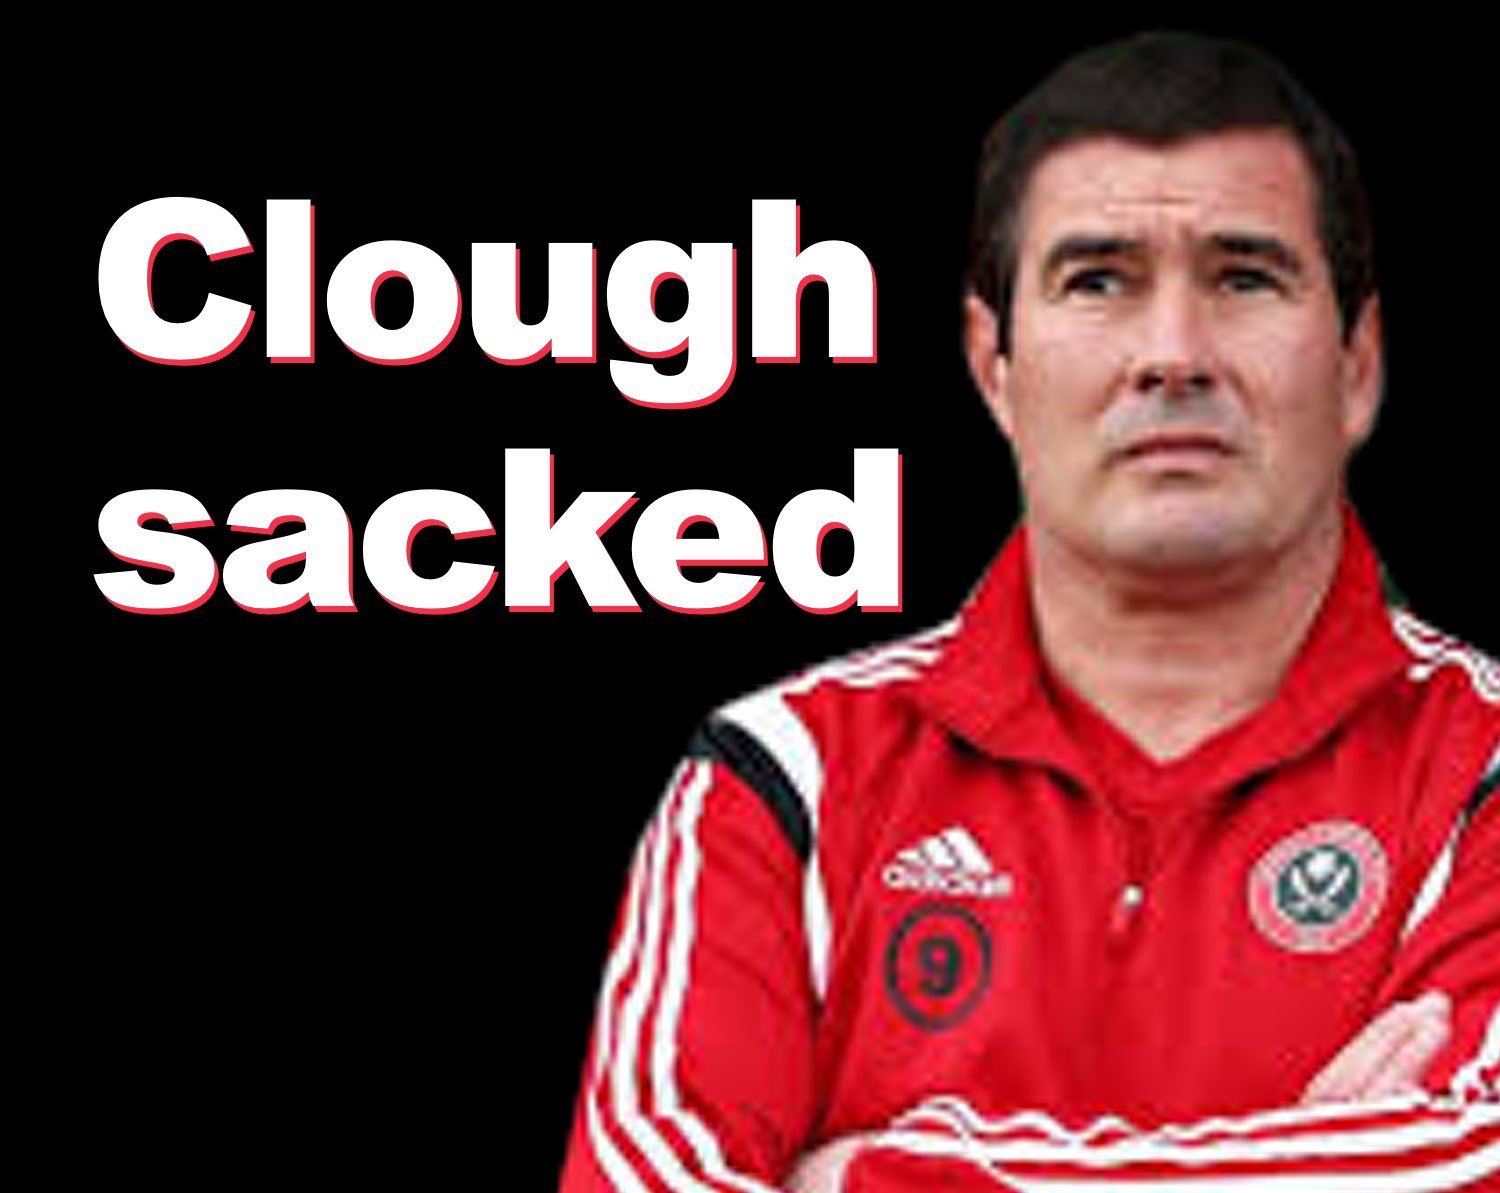 Clough sacked.png